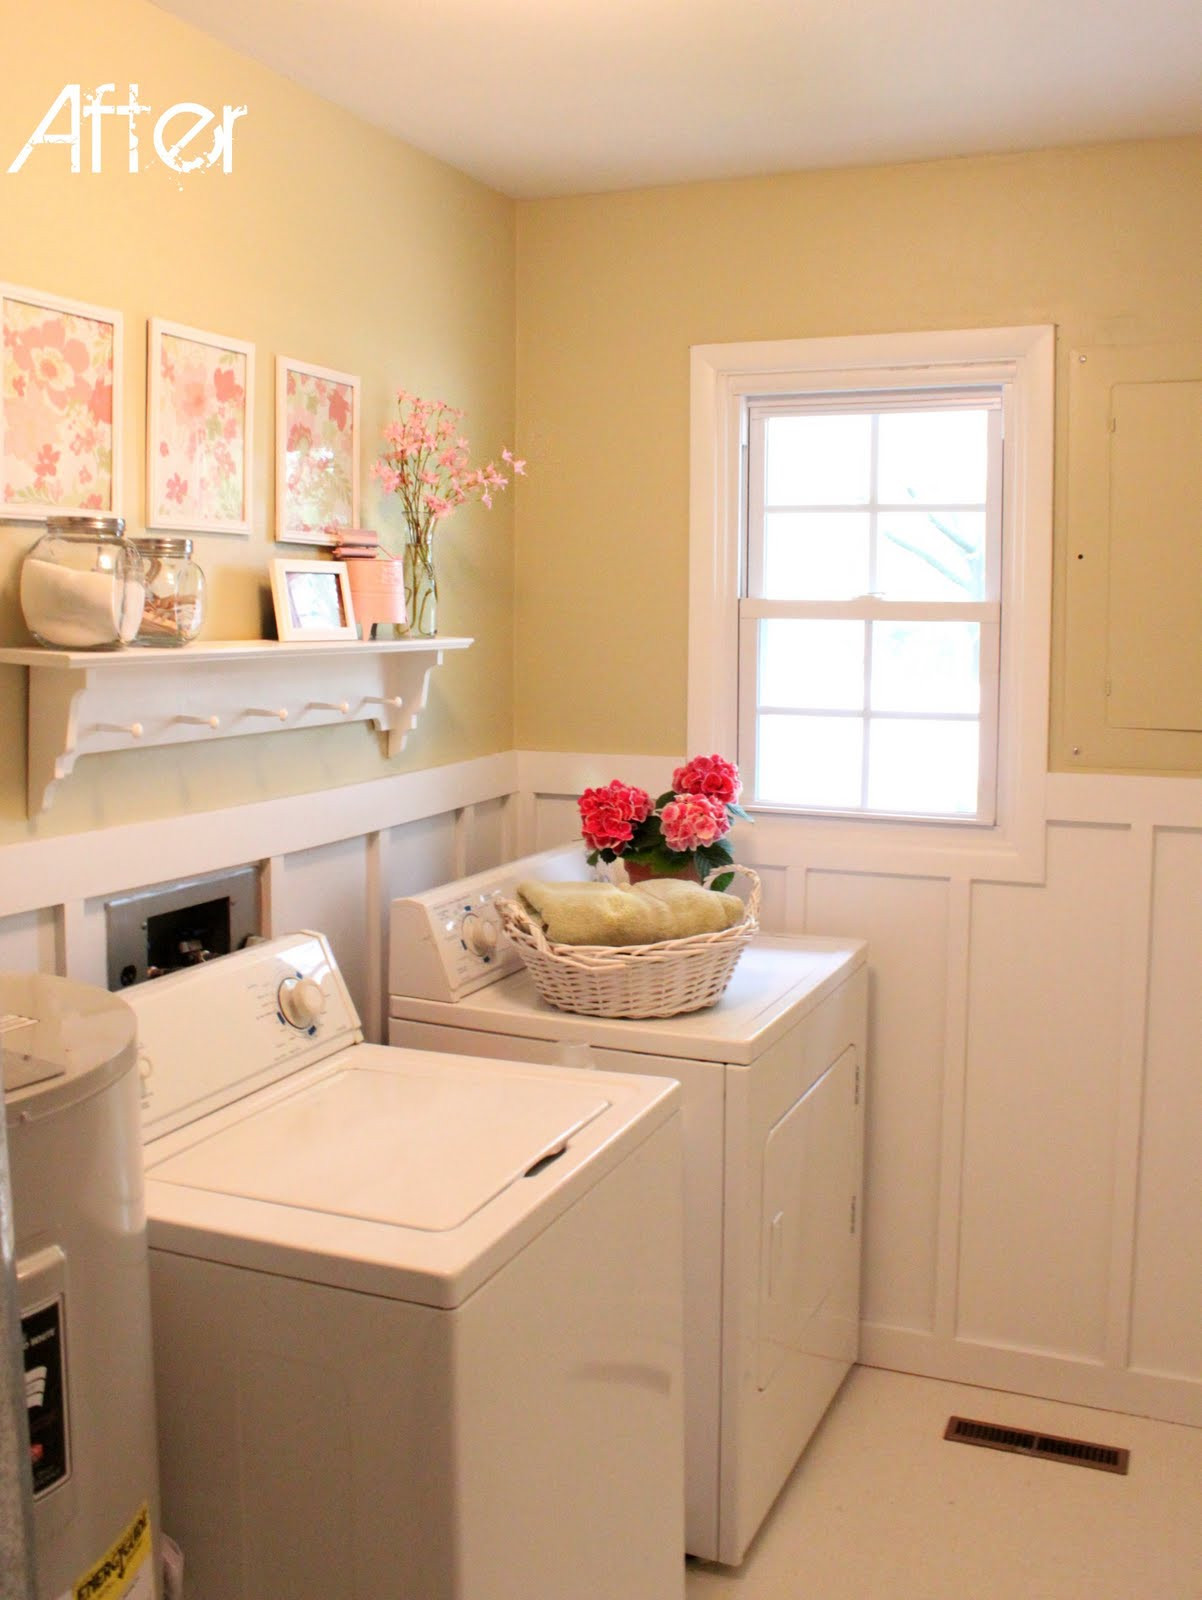 Best ideas about Laundry Room Makeover . Save or Pin My Laundry Room Makeover Love of Family & Home Now.